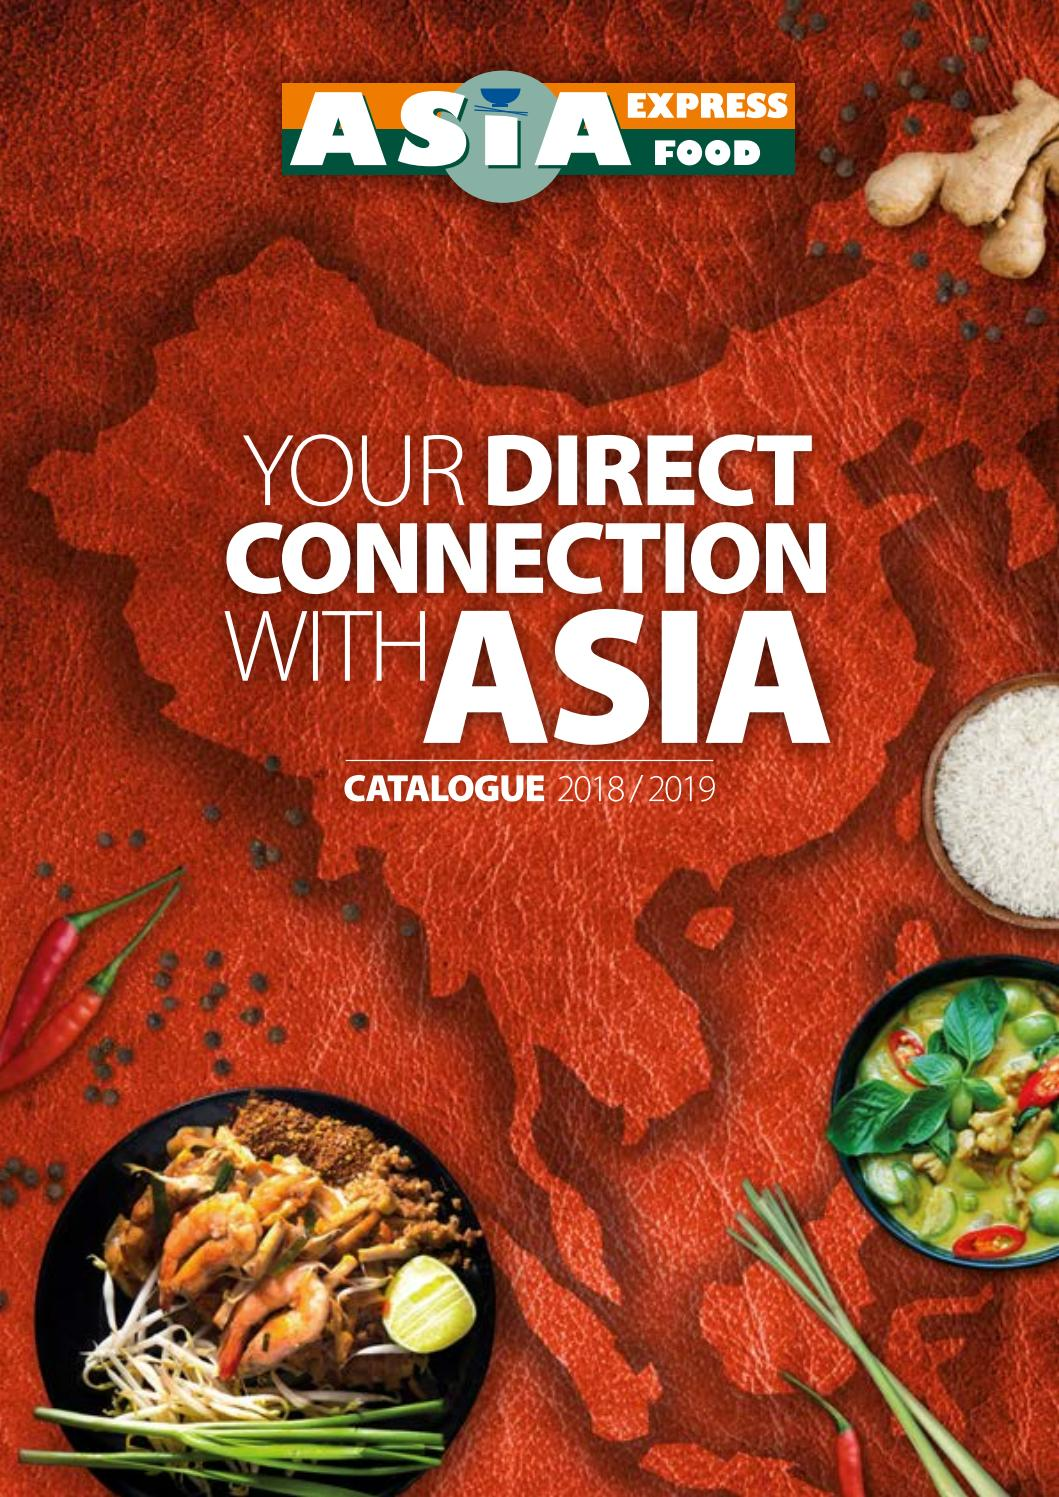 My Asia Küche Asia Express Food Asia Catalogue 2018 2019 By Gbu Printmedia Issuu